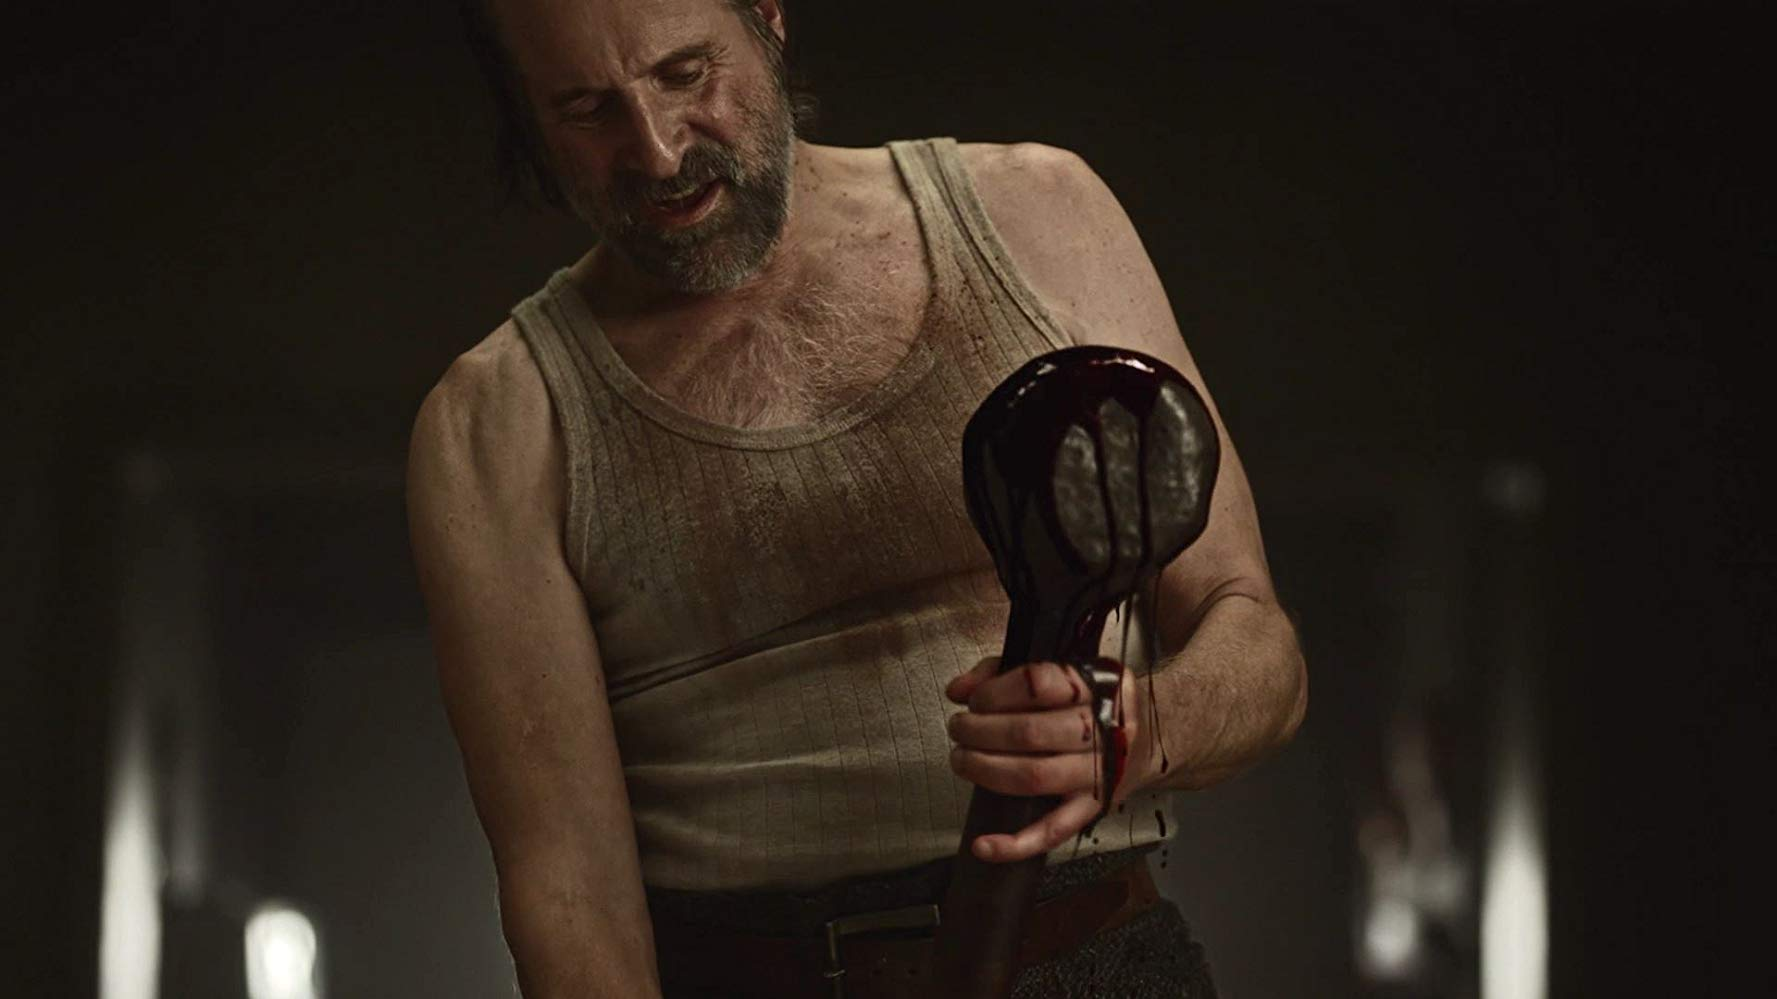 Peter Stormare as Czernobog in 'American Gods'. (Source: IMDB)